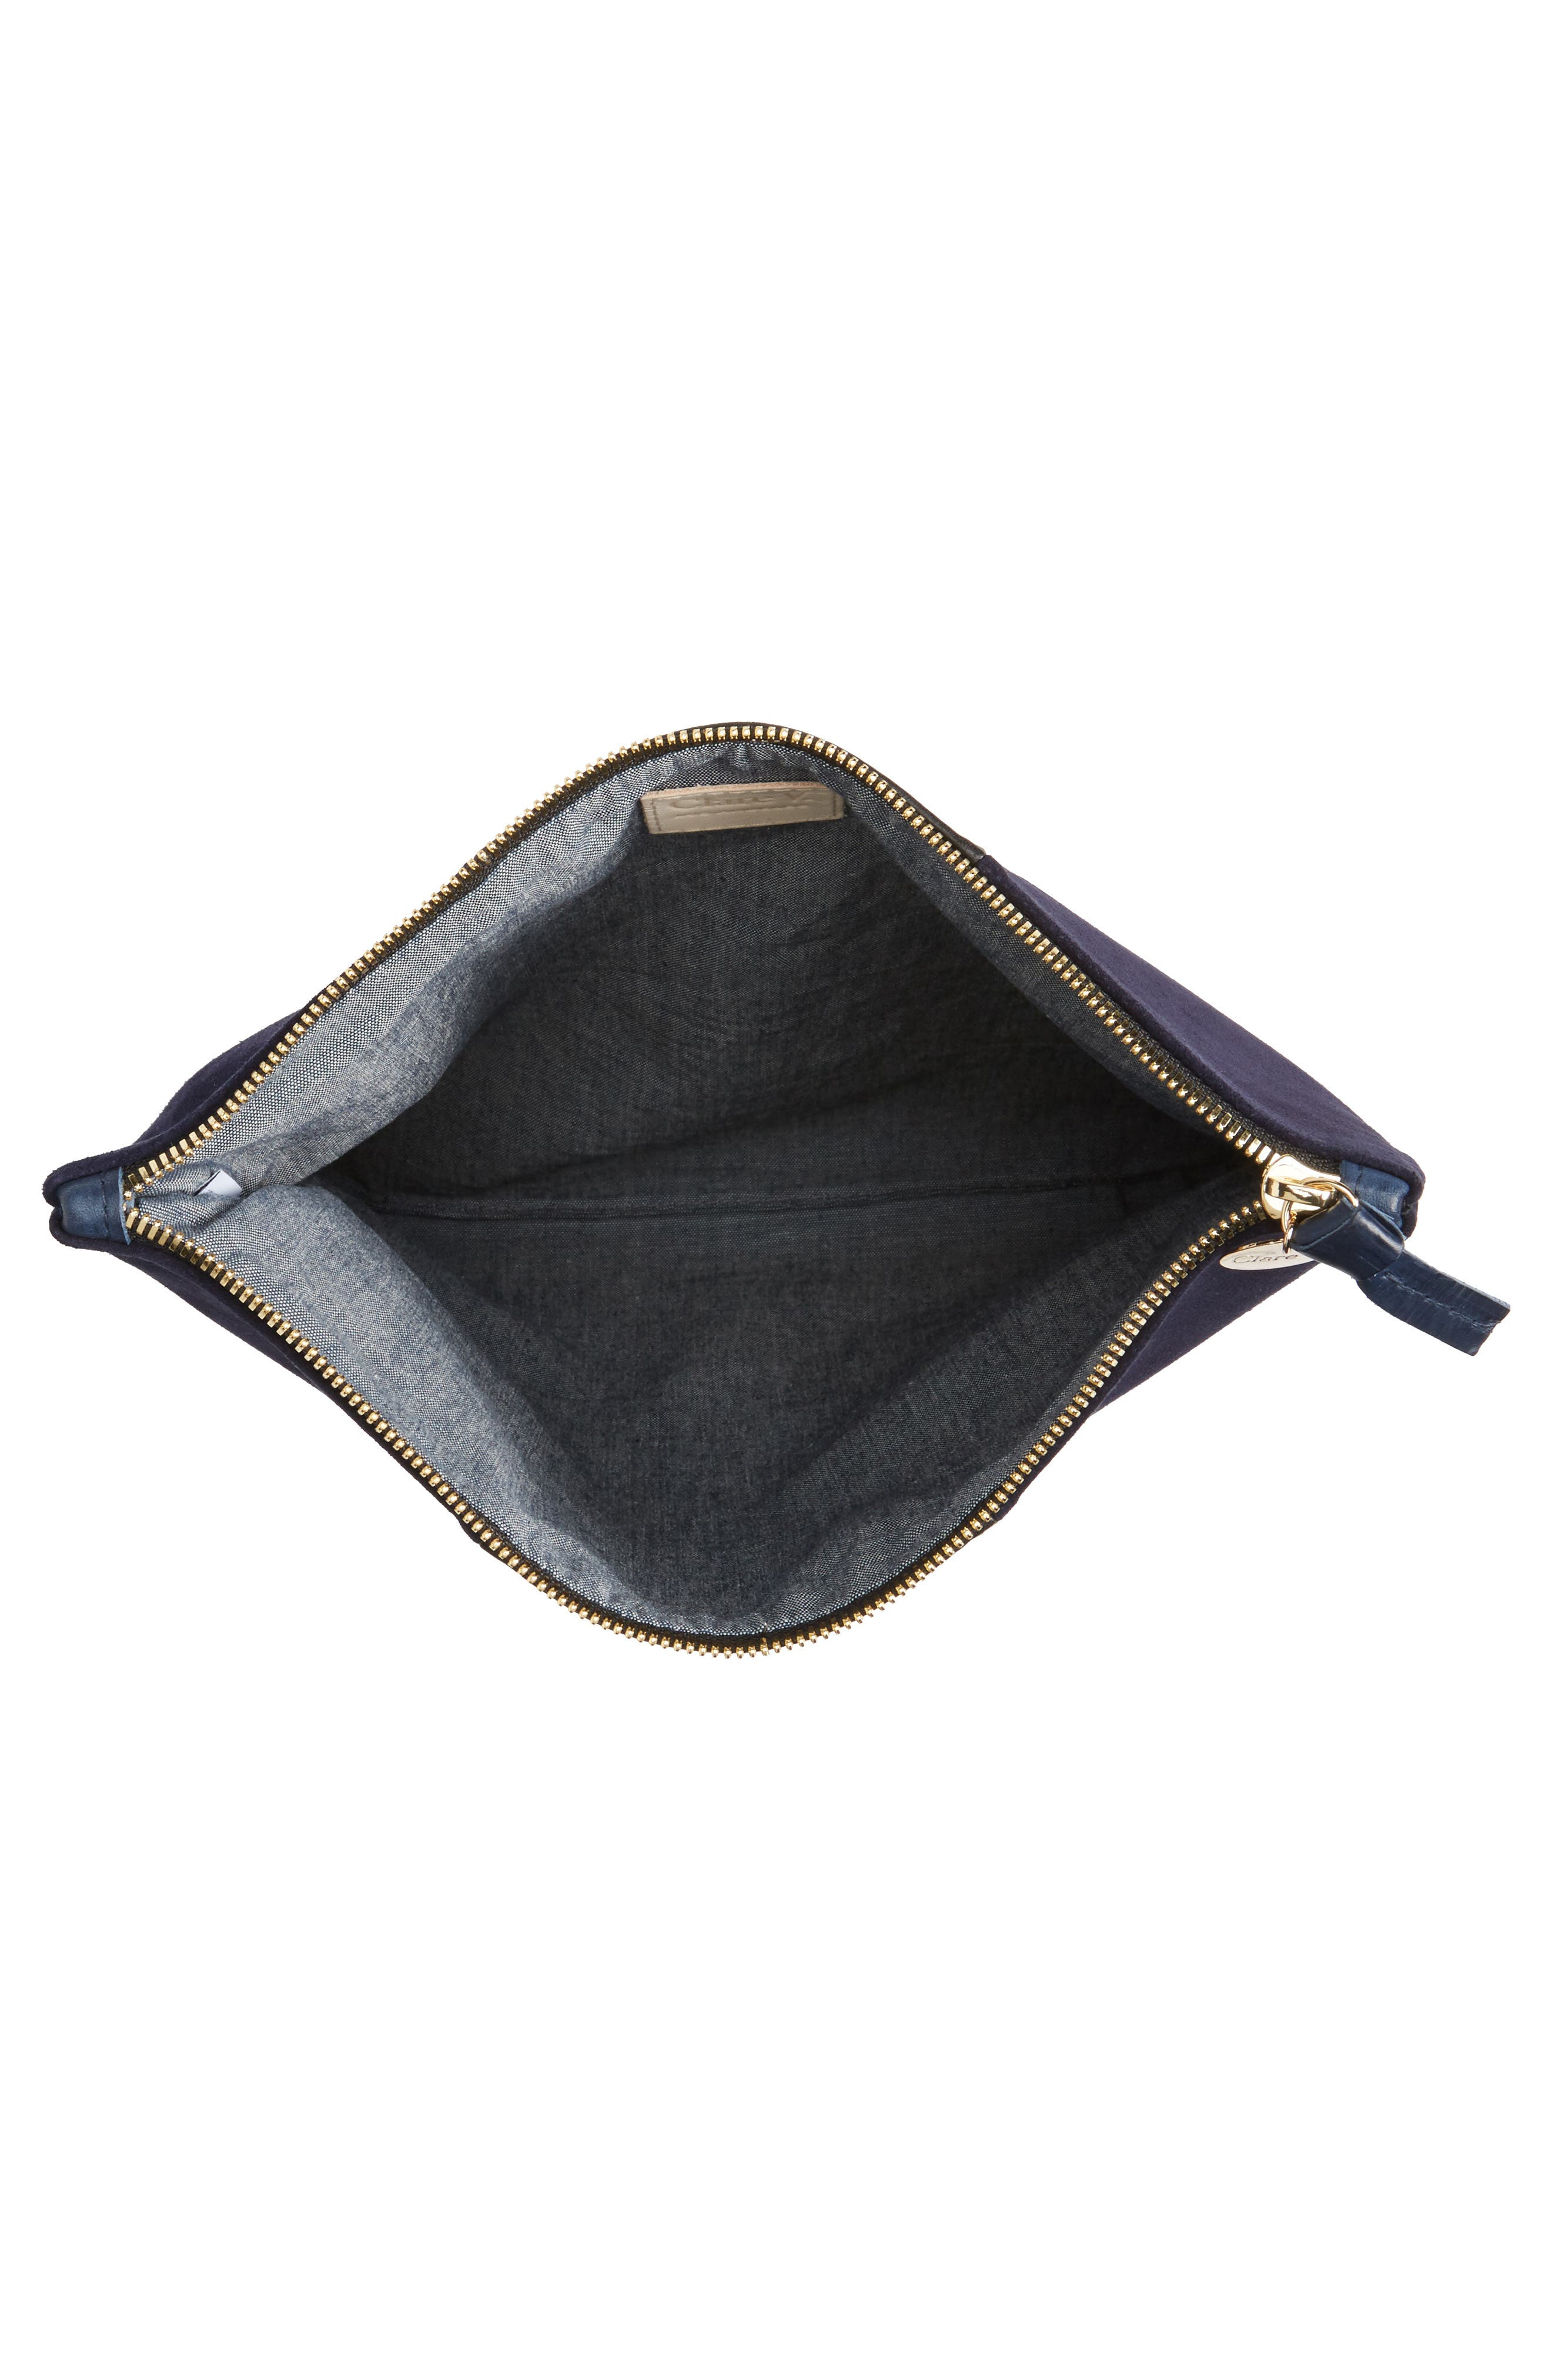 Leather & Suede Foldover Clutch,                             Alternate thumbnail 4, color,                             001